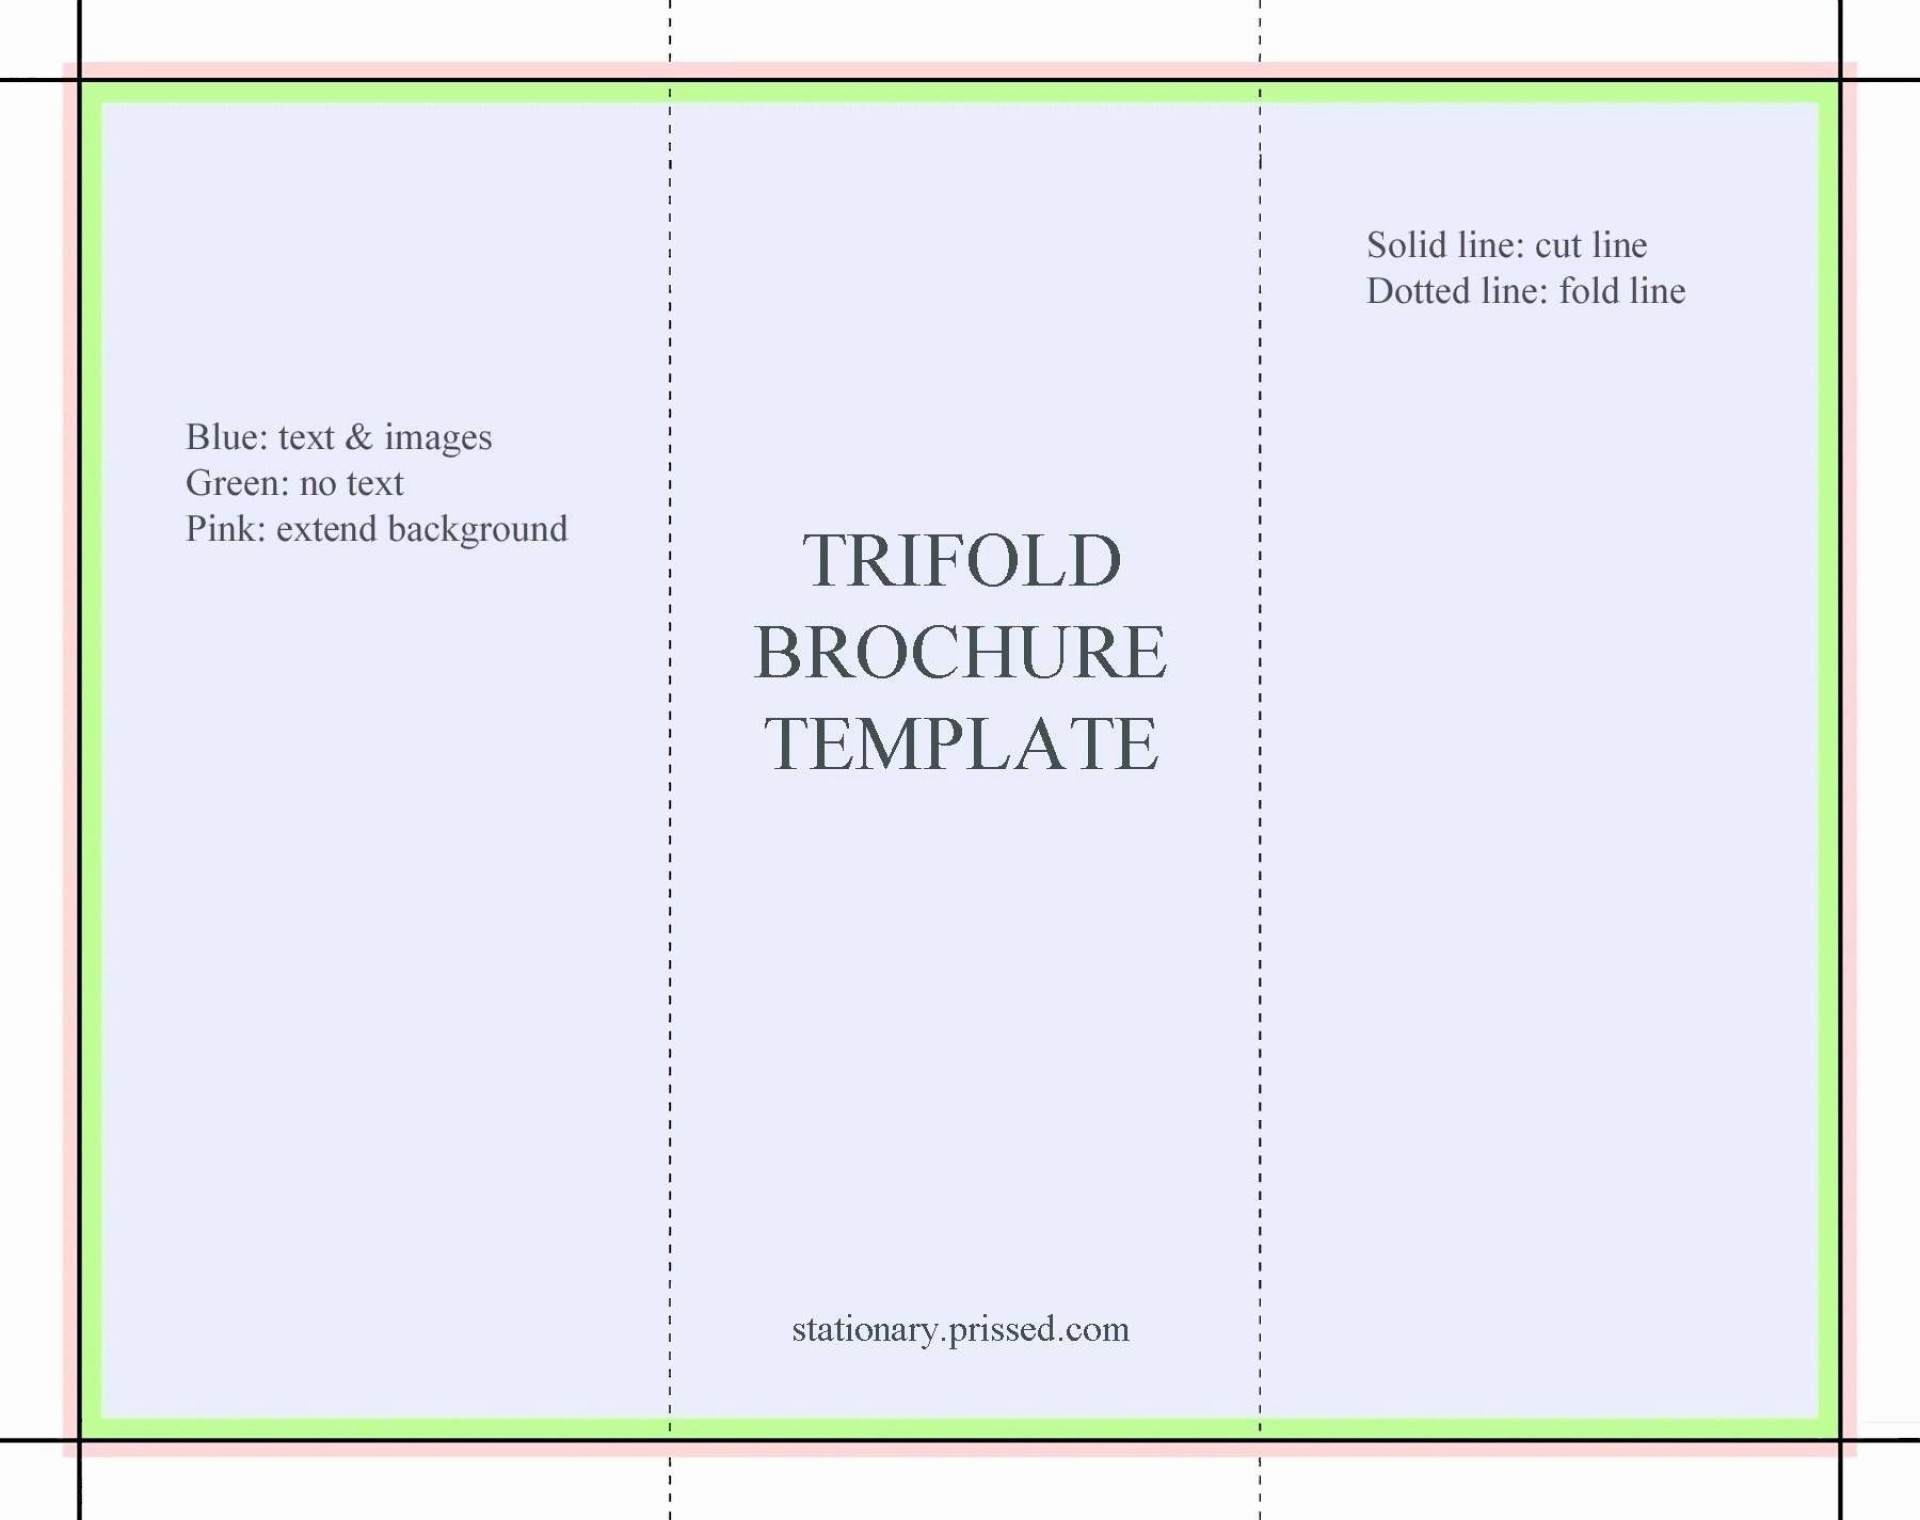 000 Unusual Brochure Template For Google Doc High Definition  Docs Free 3 Panel Tri Fold1920